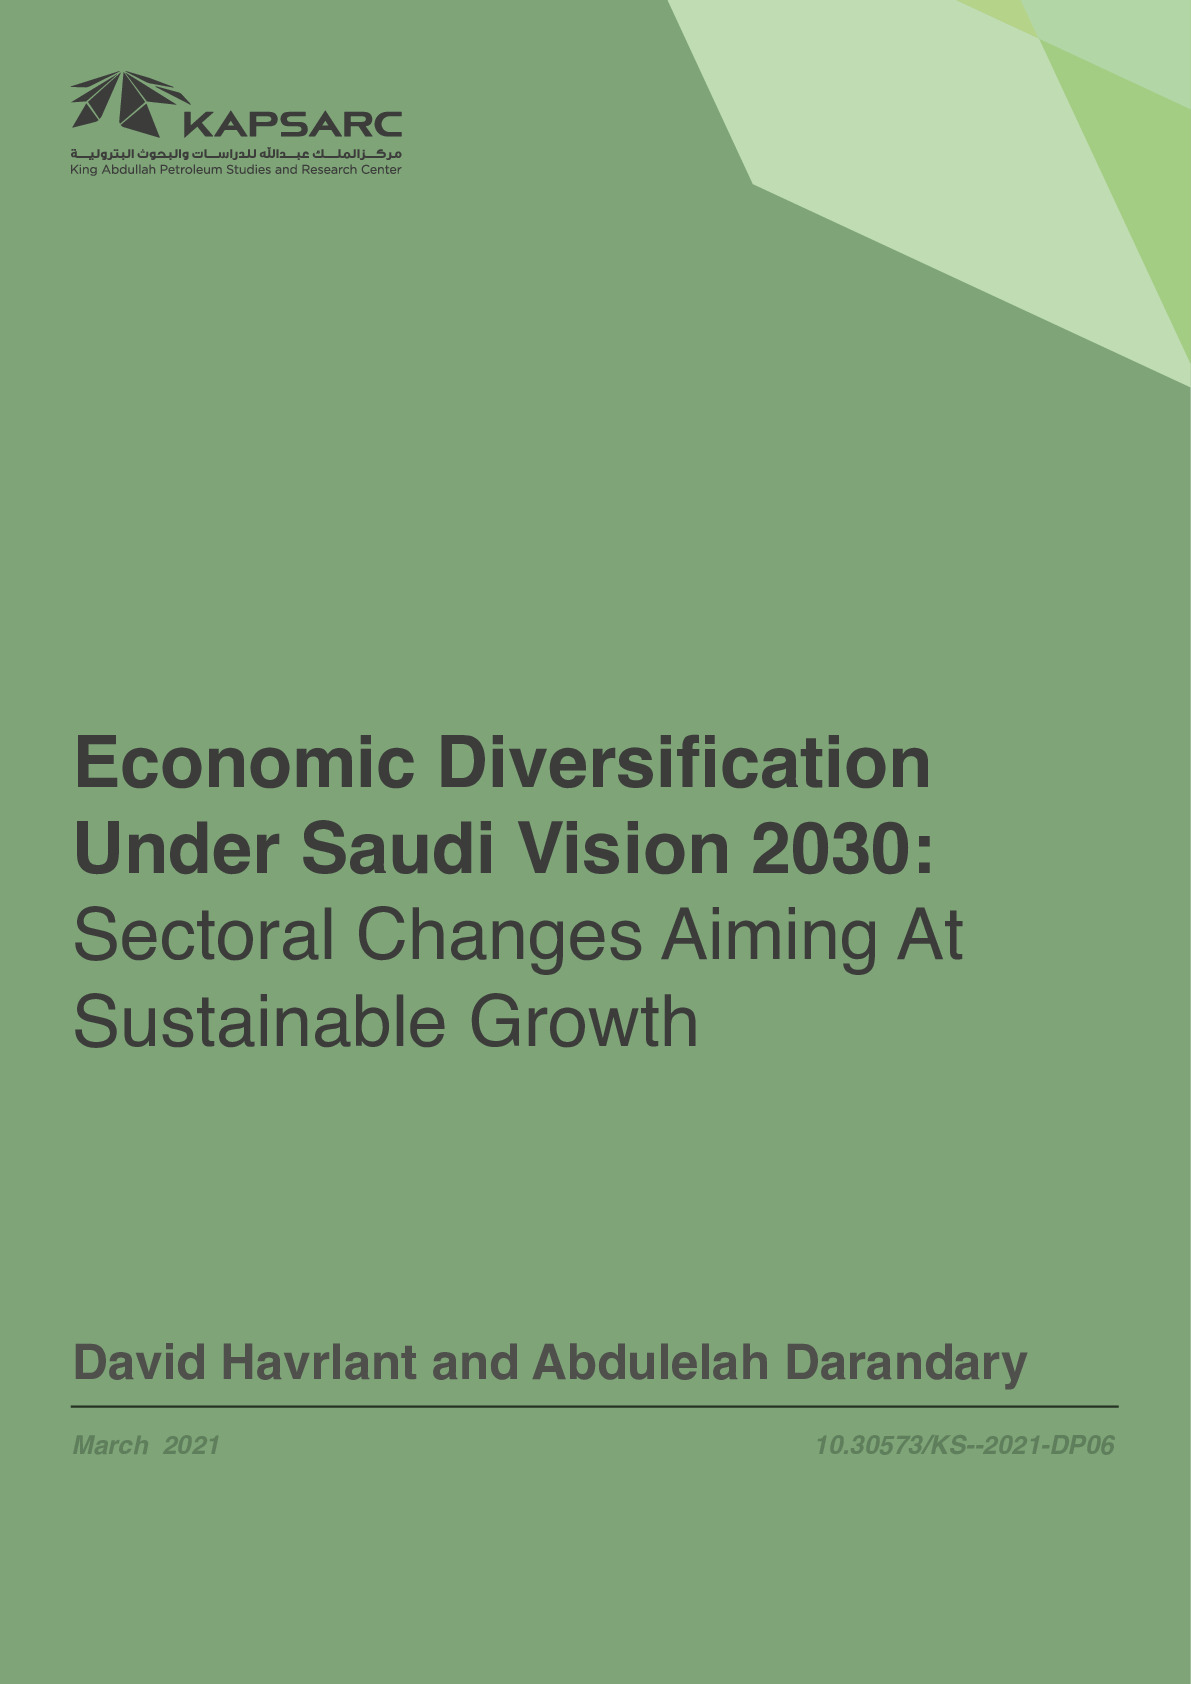 Economic Diversification Under Saudi Vision 2030